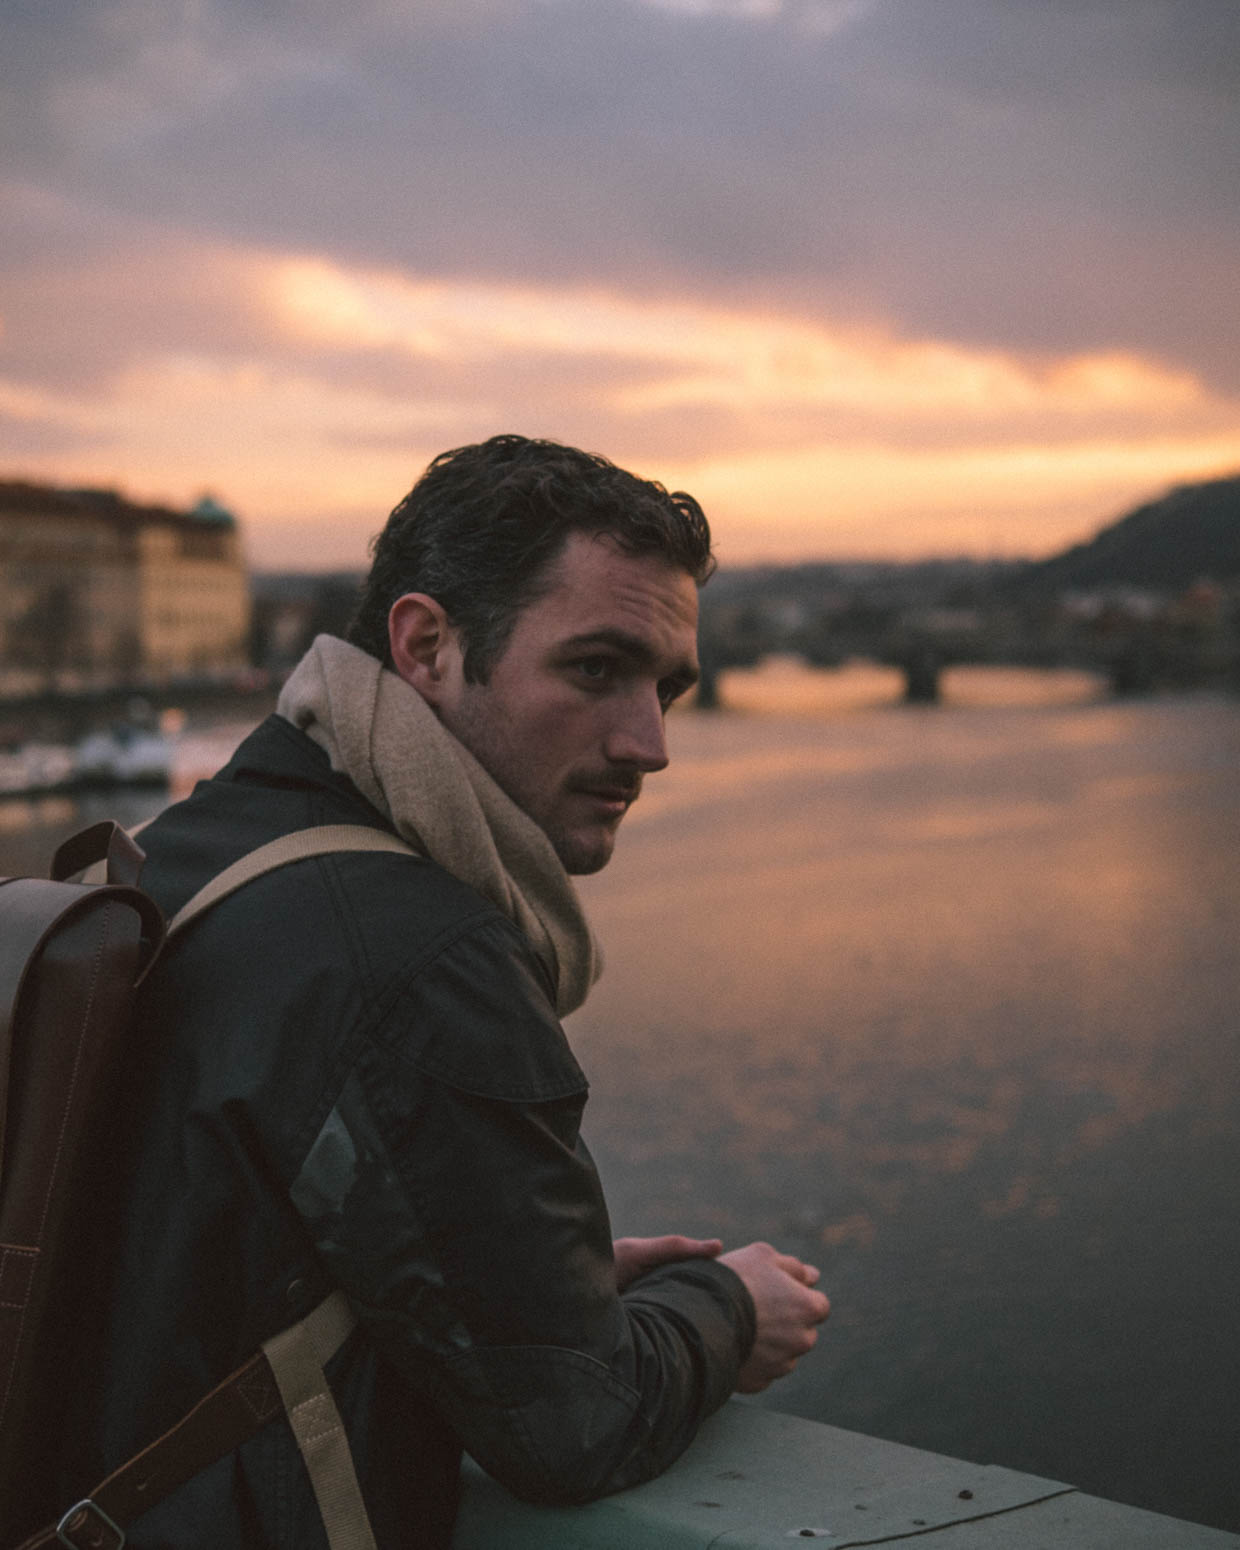 prag-praha-prague-travel-city-visit-view-sunset-philipp-brooks-backpack (3)